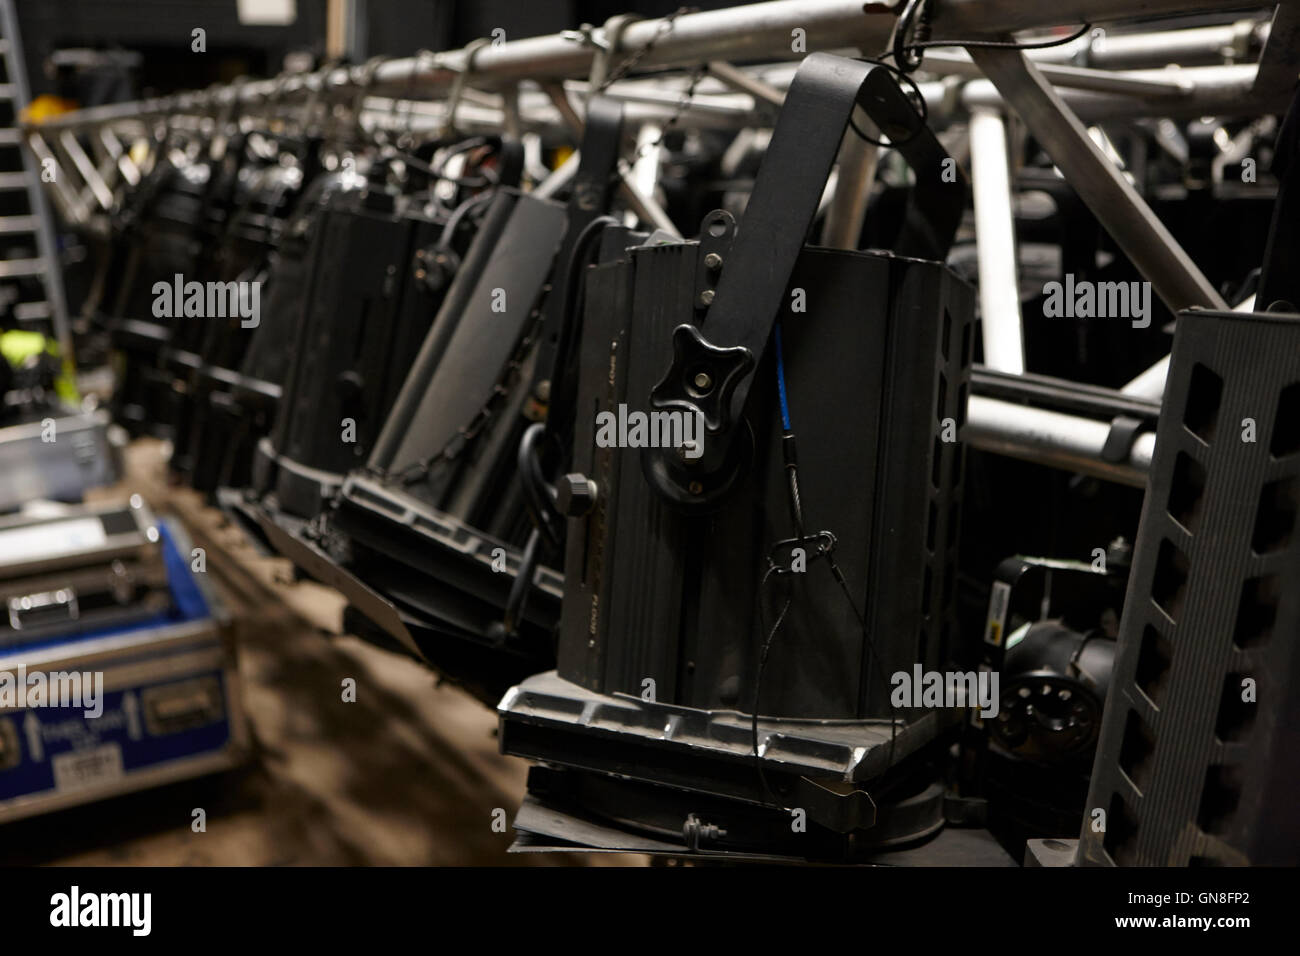 backstage lighting rigs in a theatre - Stock Image